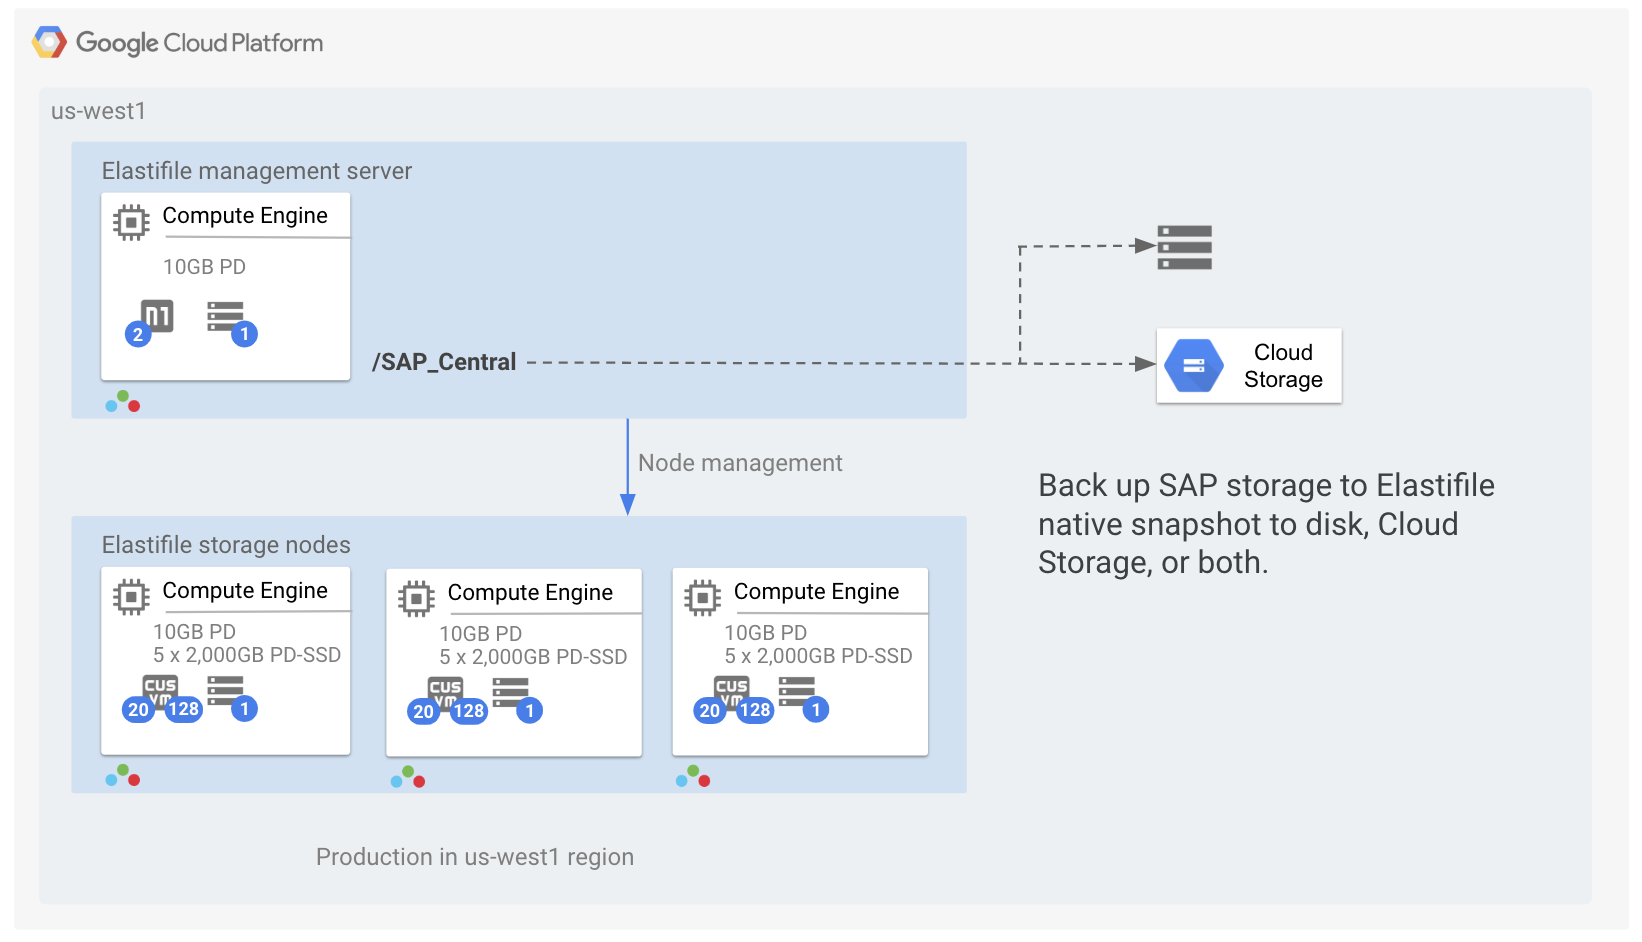 Deploying highly available SAP storage infrastructure with